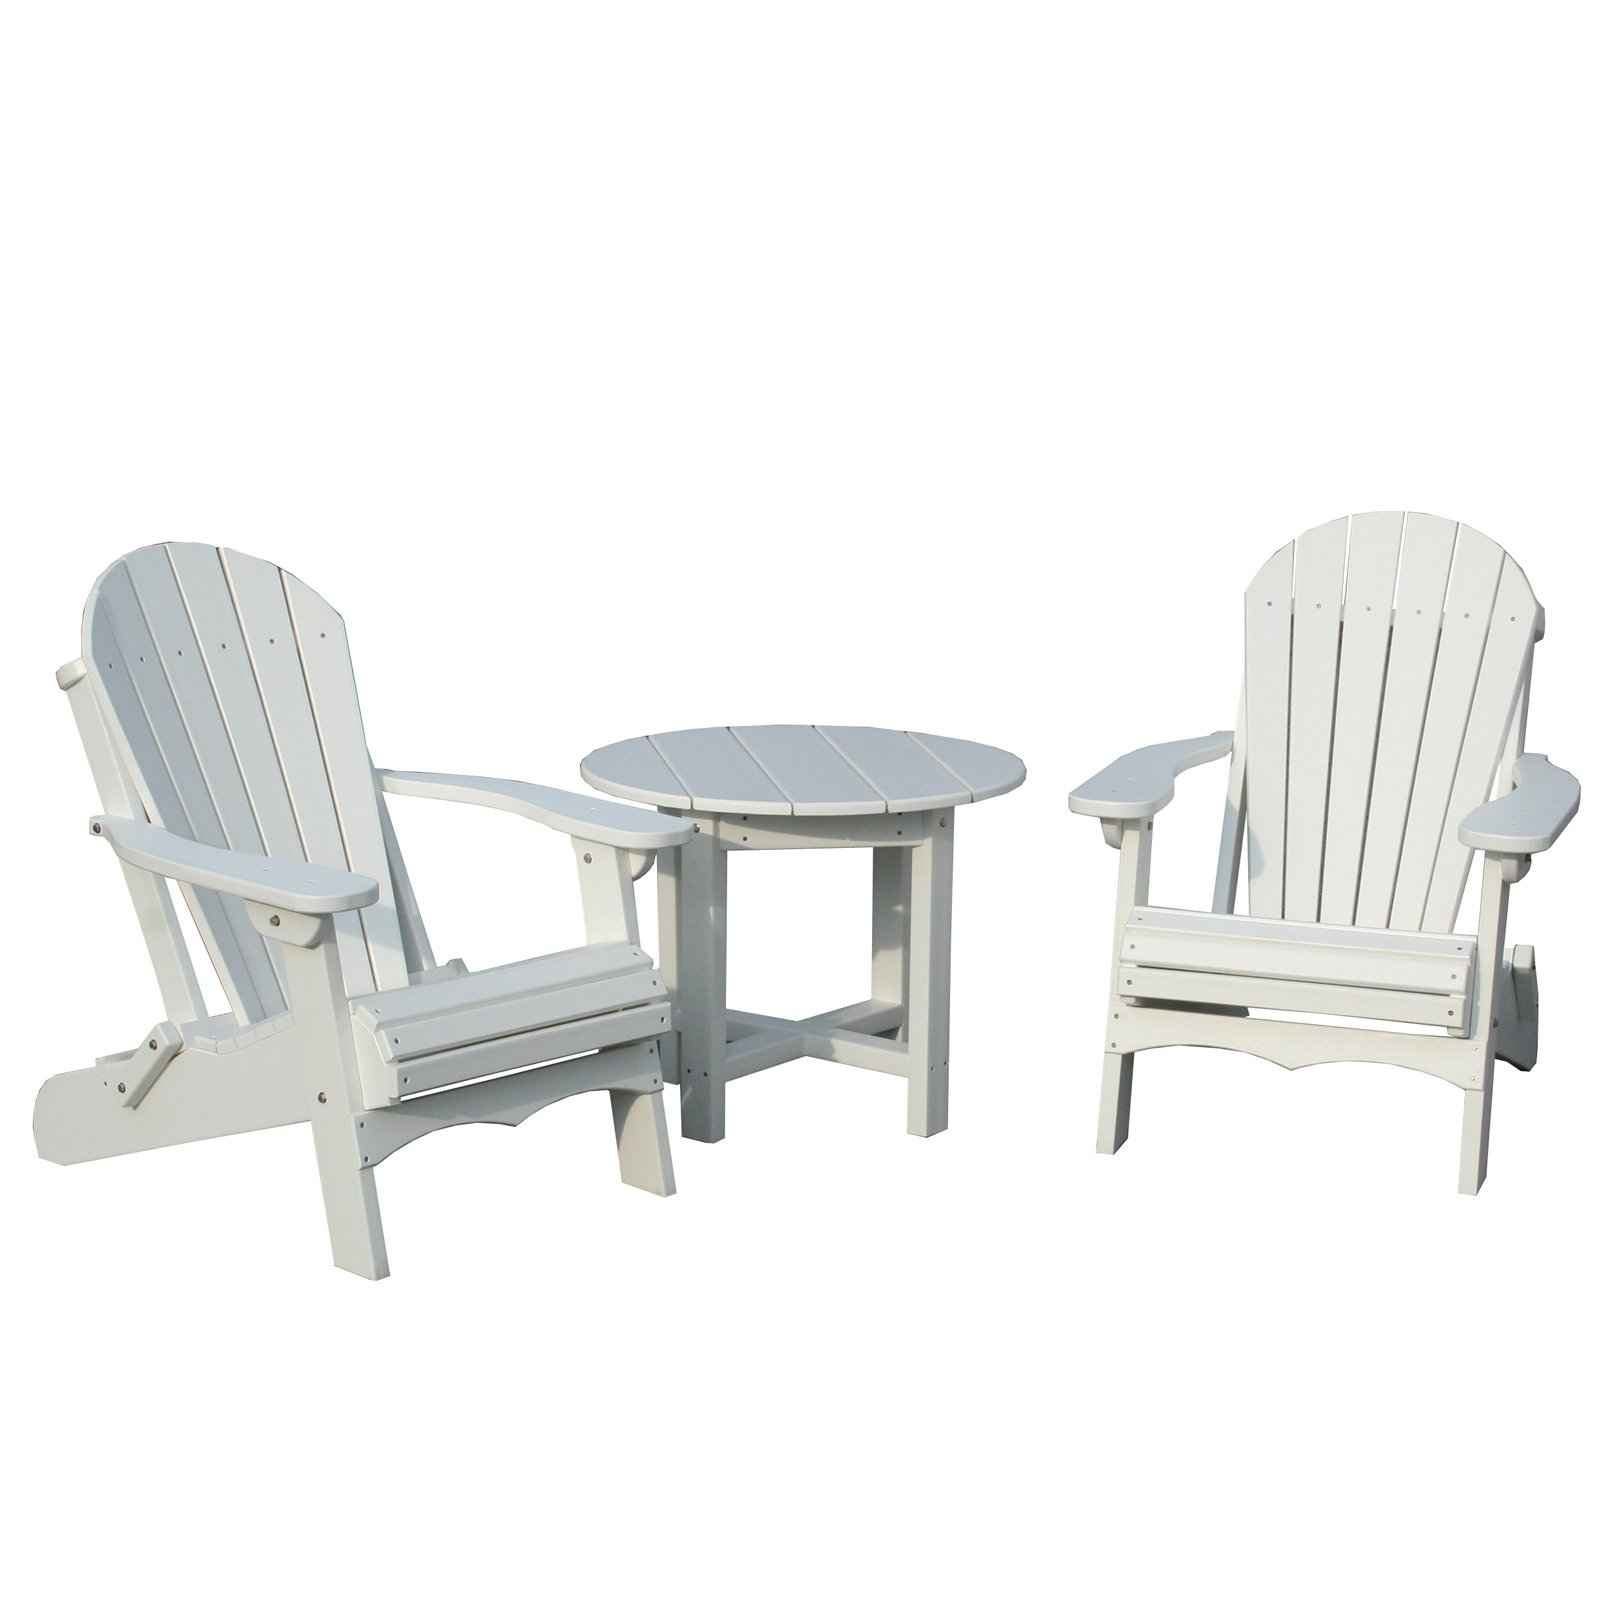 White Plastic Tables Reviews